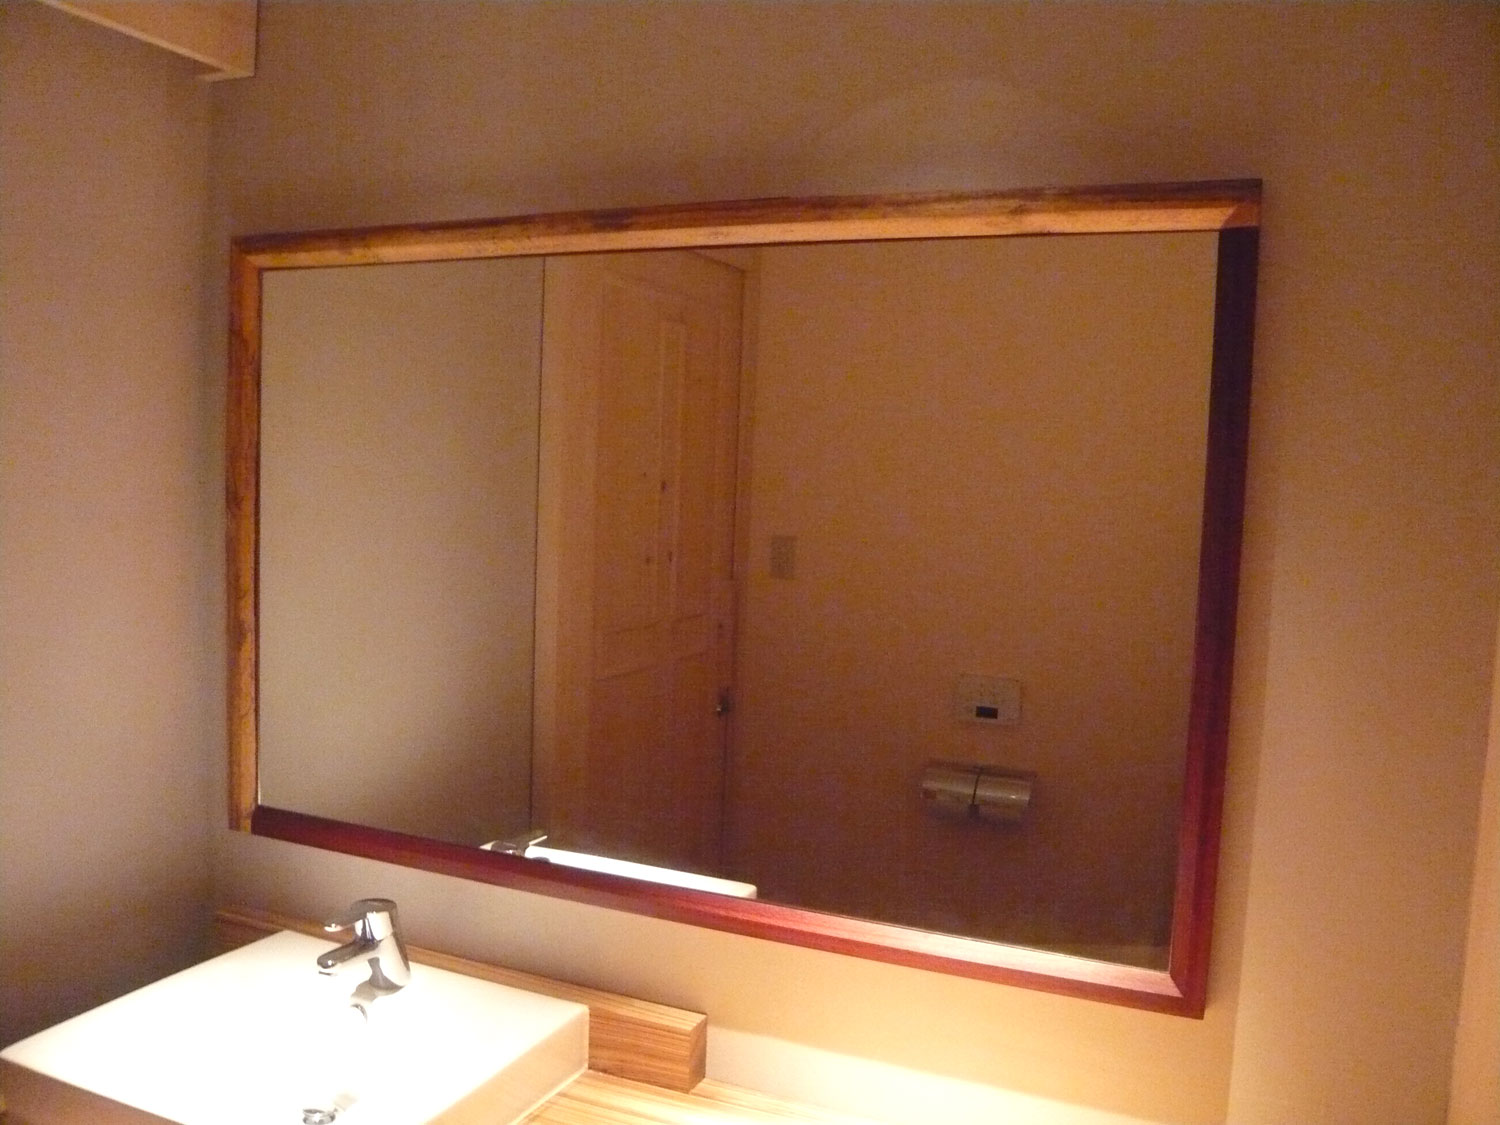 #014 RAYS Rest Room  - Mirror